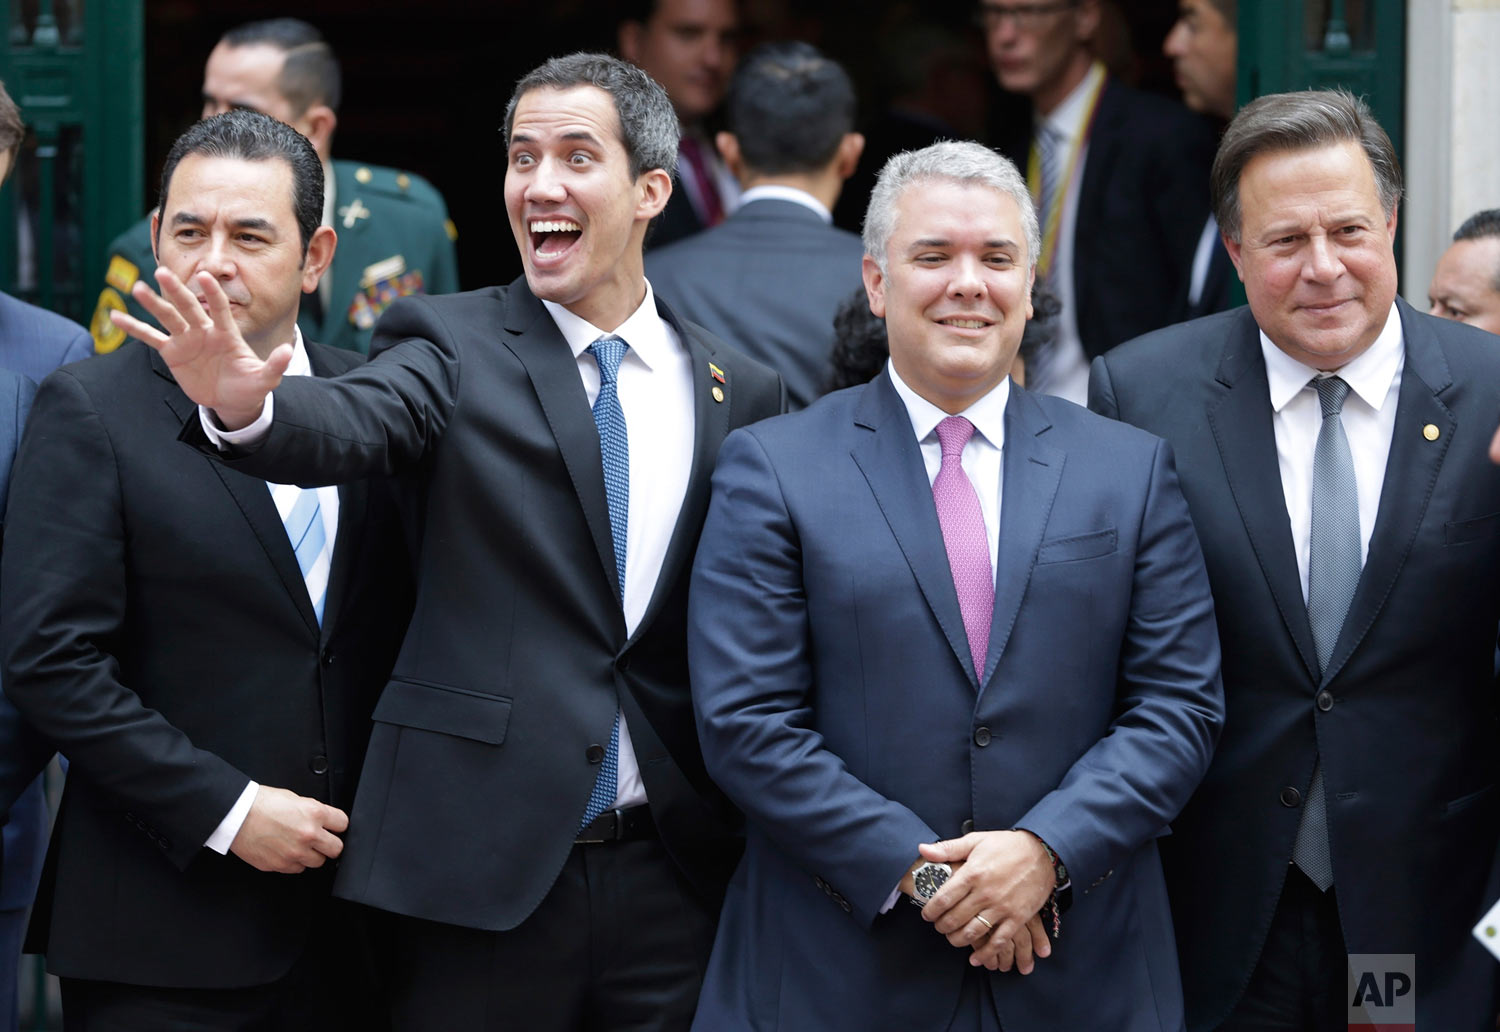 Venezuela's self-proclaimed interim president Juan Guaido waves flanked by Guatemala's President Jimmy Morales, from left, Colombia's President Ivan Duque and Panama's President Juan Carlos Varela as they gather for a group photo after attending an emergency Lima Group meeting concerning Venezuela, in Bogota, Colombia, Feb. 25, 2019. (AP Photo/Martin Mejia)